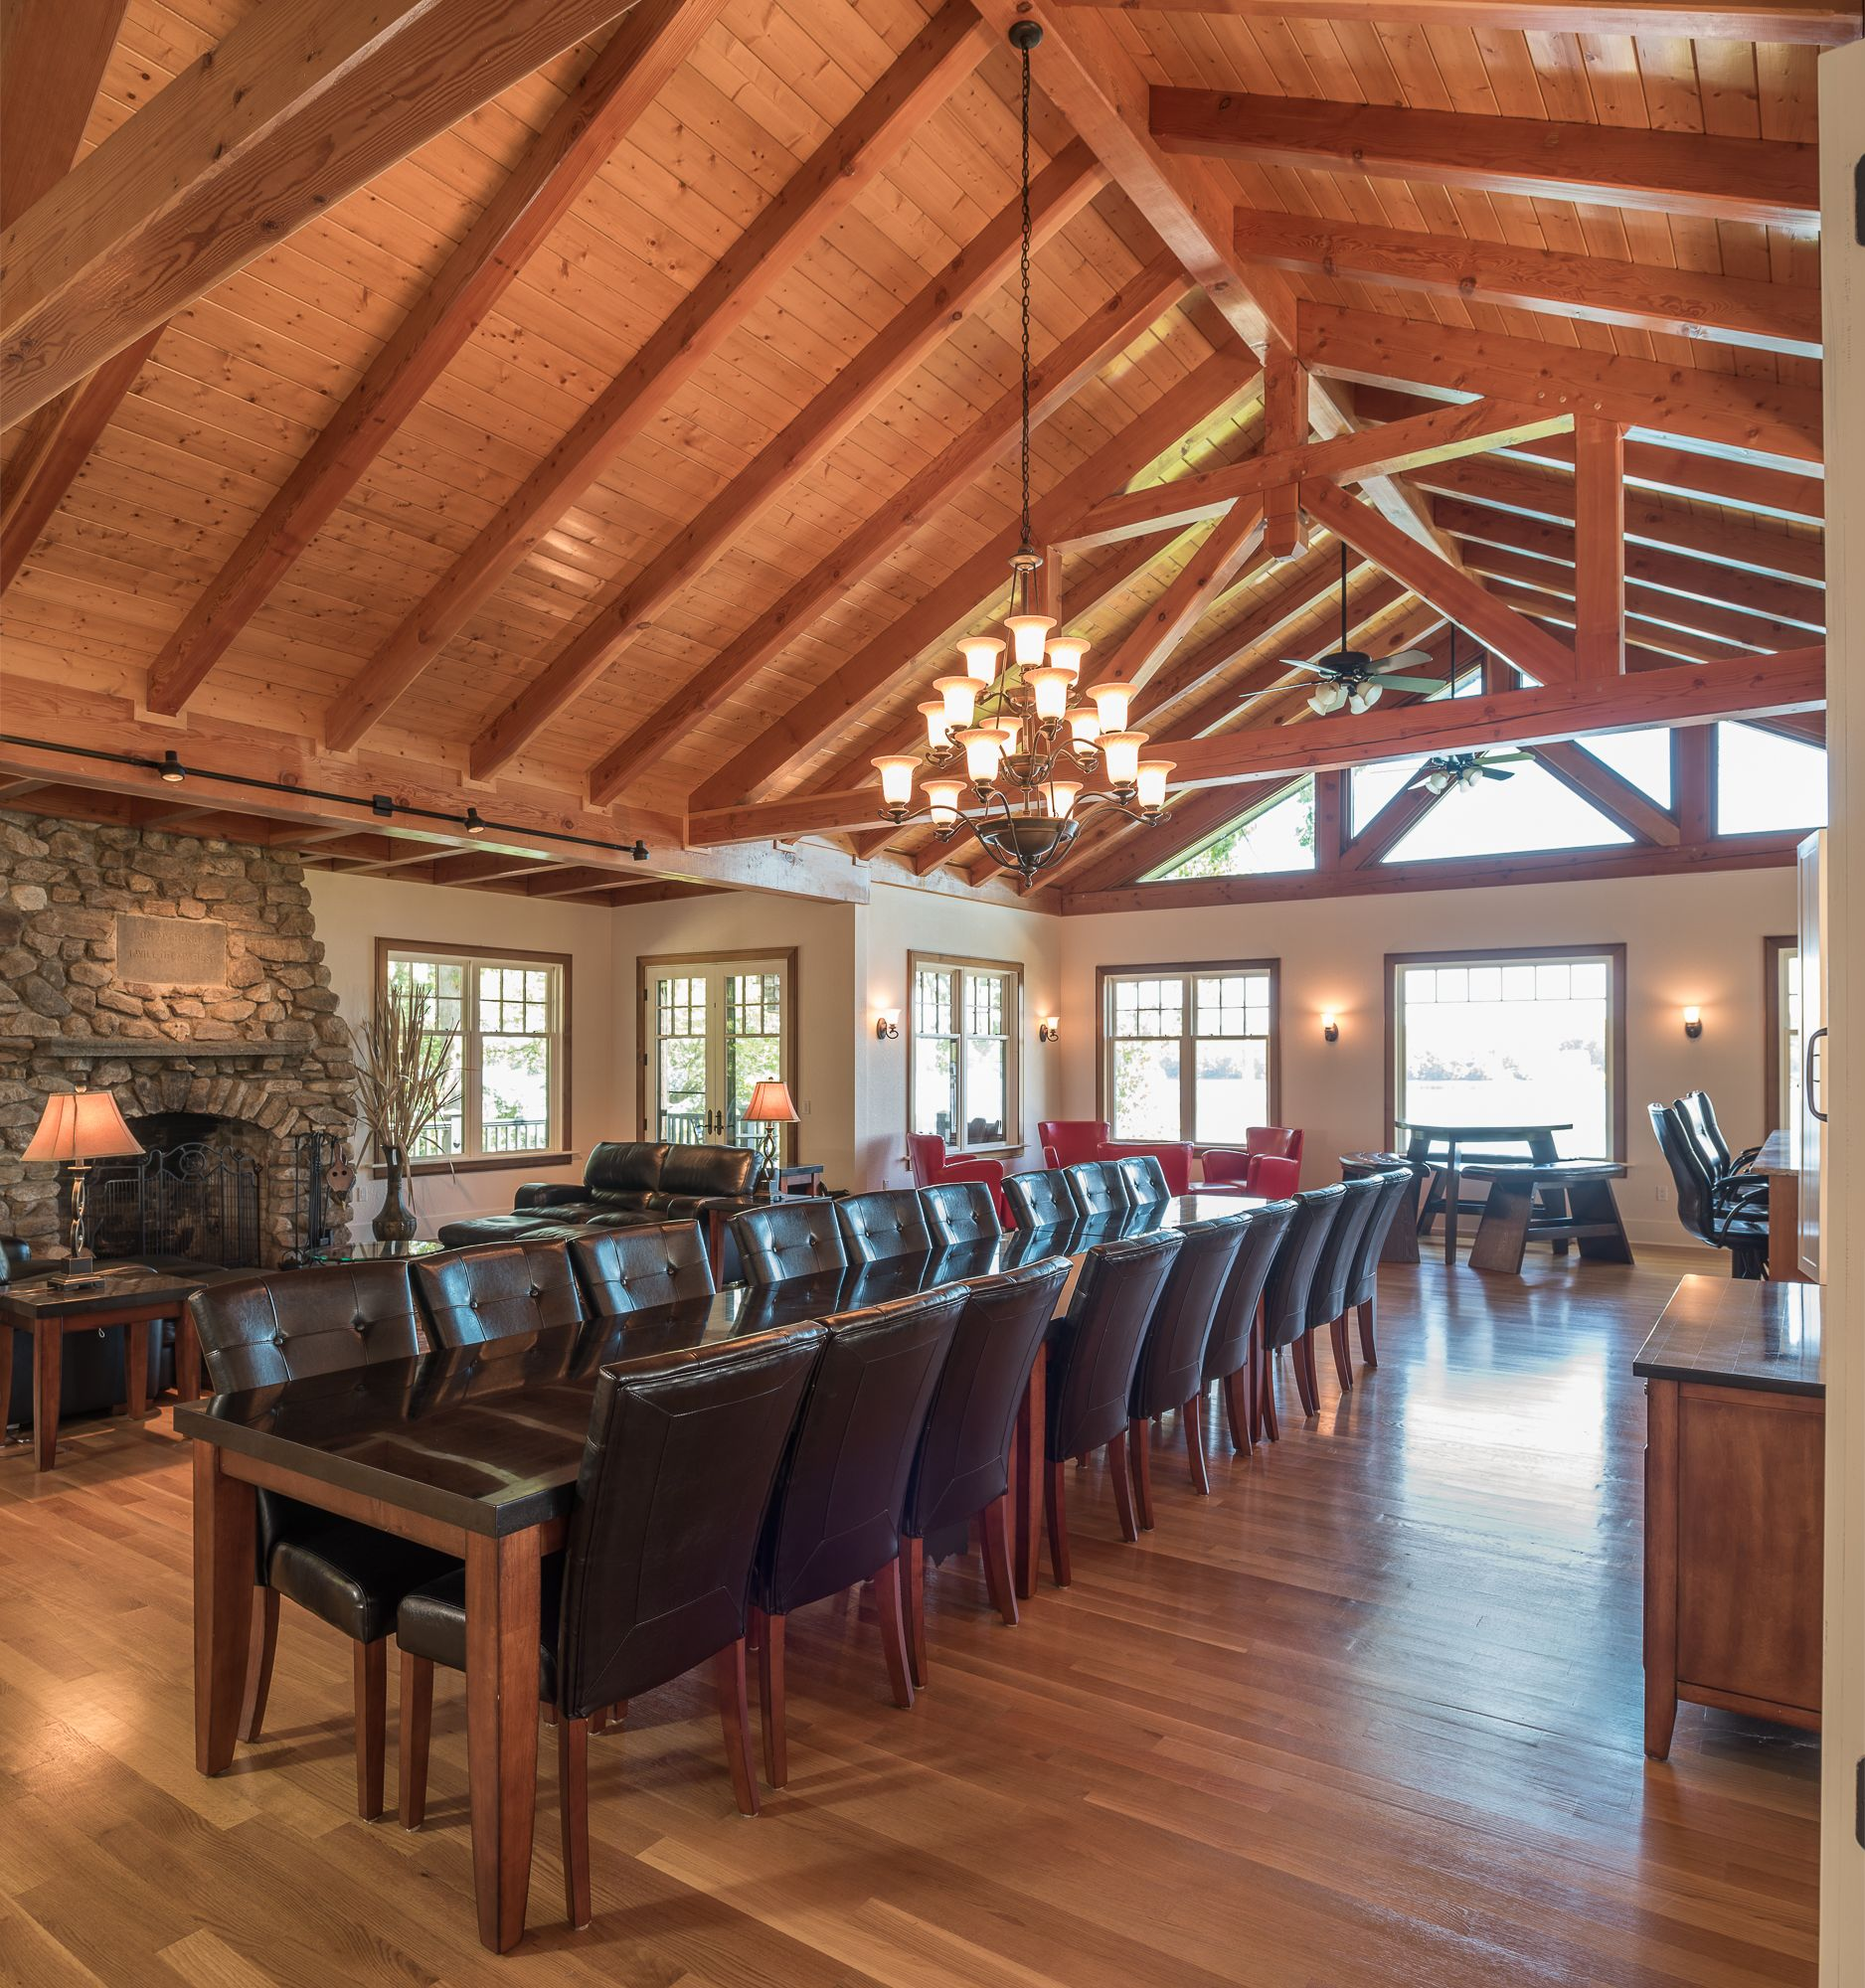 Timber Frame Great Room With Timber Trusses And Open Concept